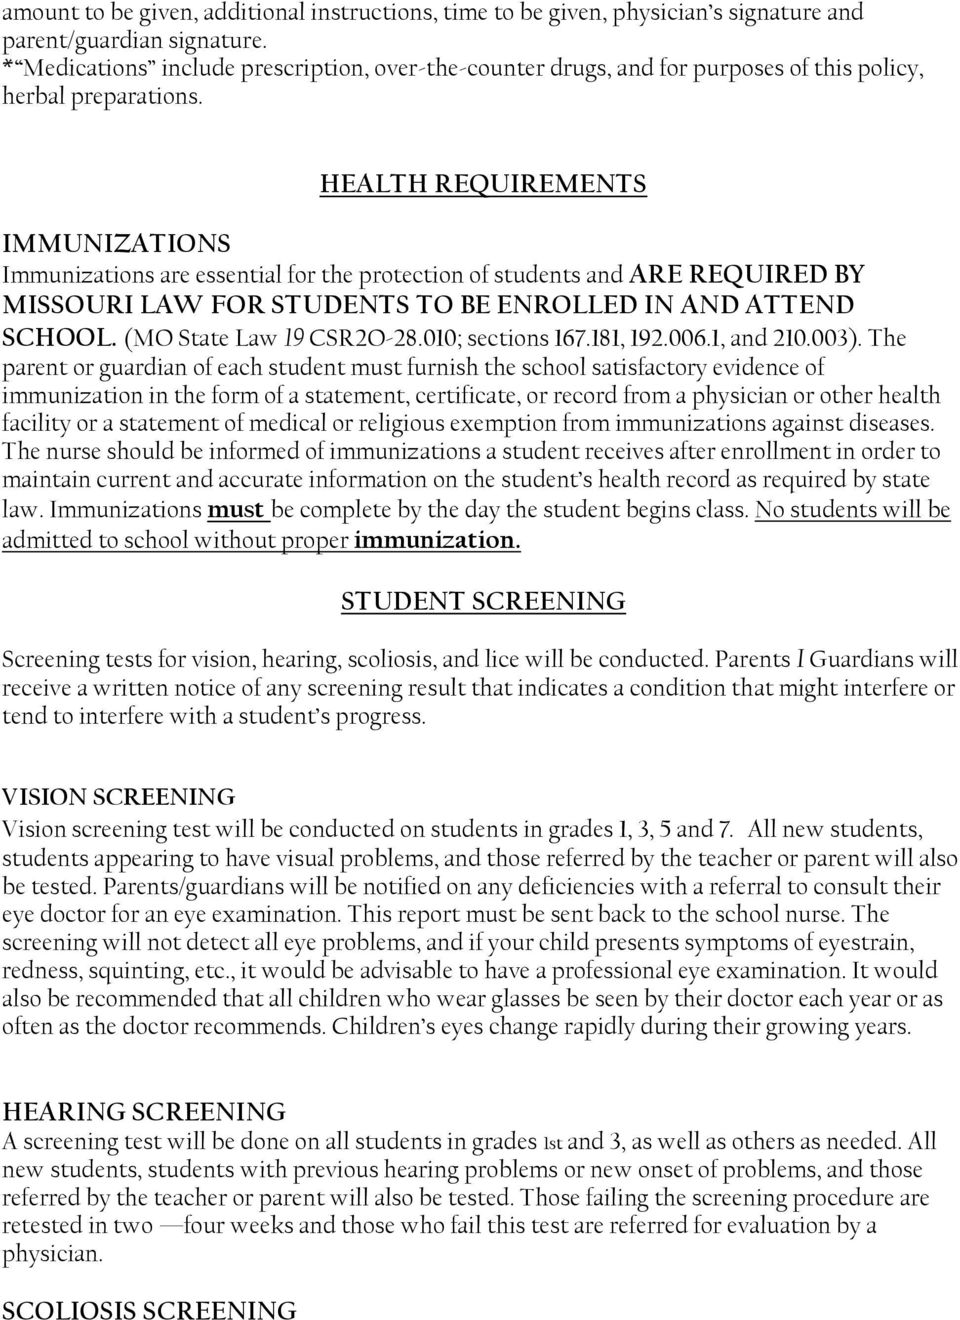 HEALTH REQUIREMENTS IMMUNIZATIONS Immunizations are essential for the protection of students and ARE REQUIRED BY MISSOURI LAW FOR STUDENTS TO BE ENROLLED IN AND ATTEND SCHOOL.